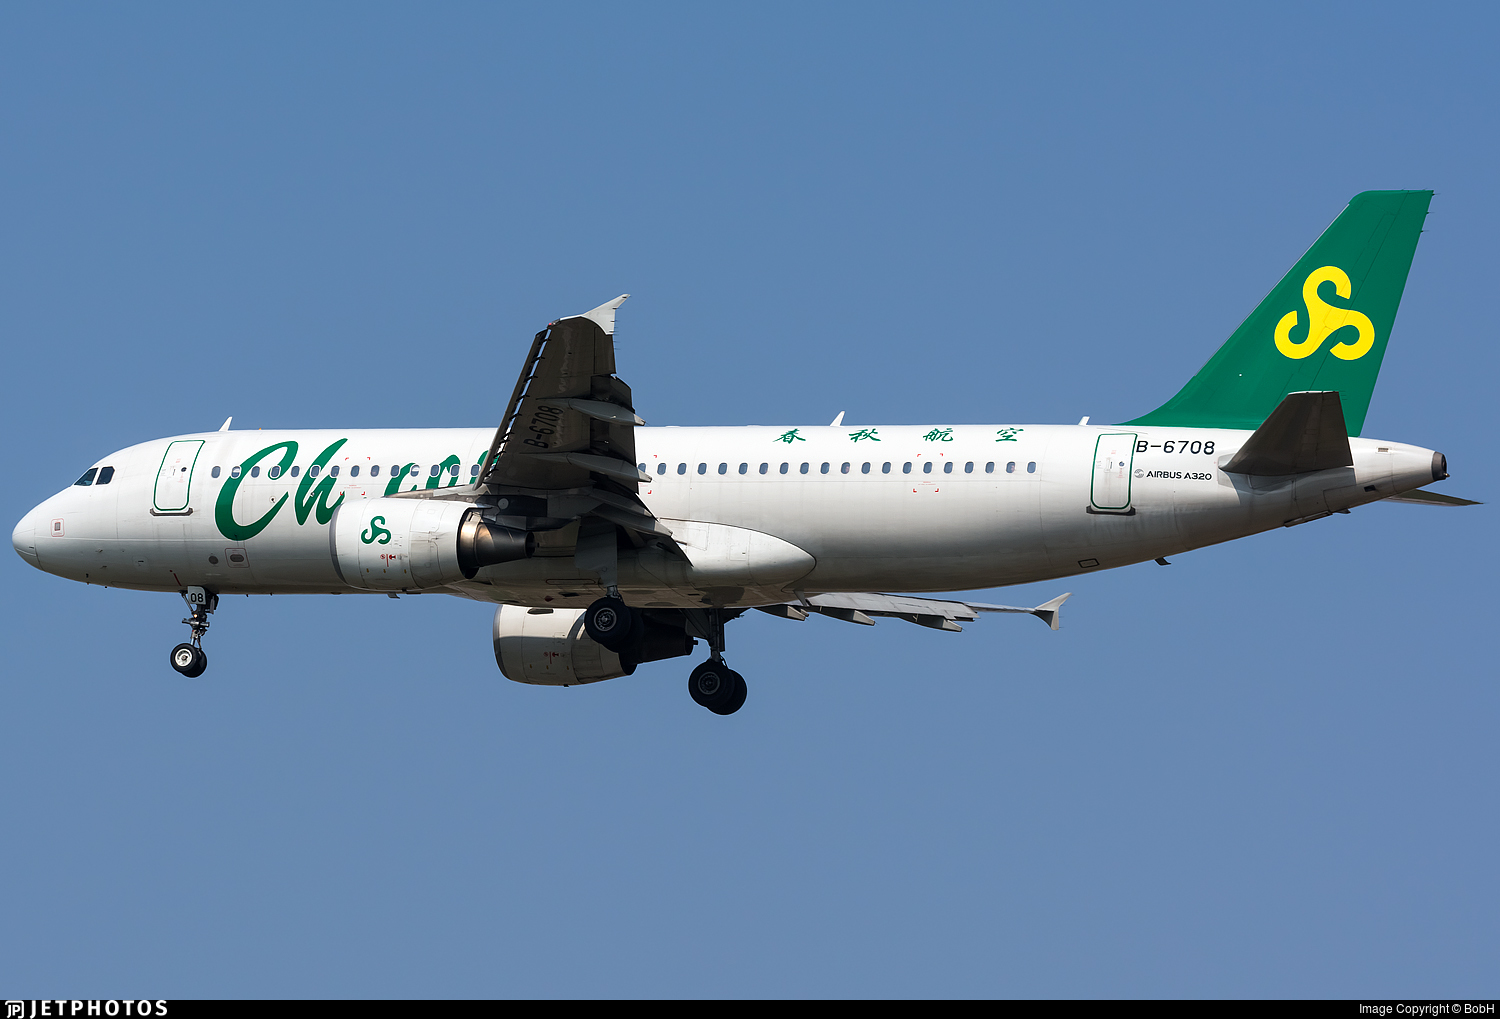 Spring Airlines A320 B-6708 (1:400)